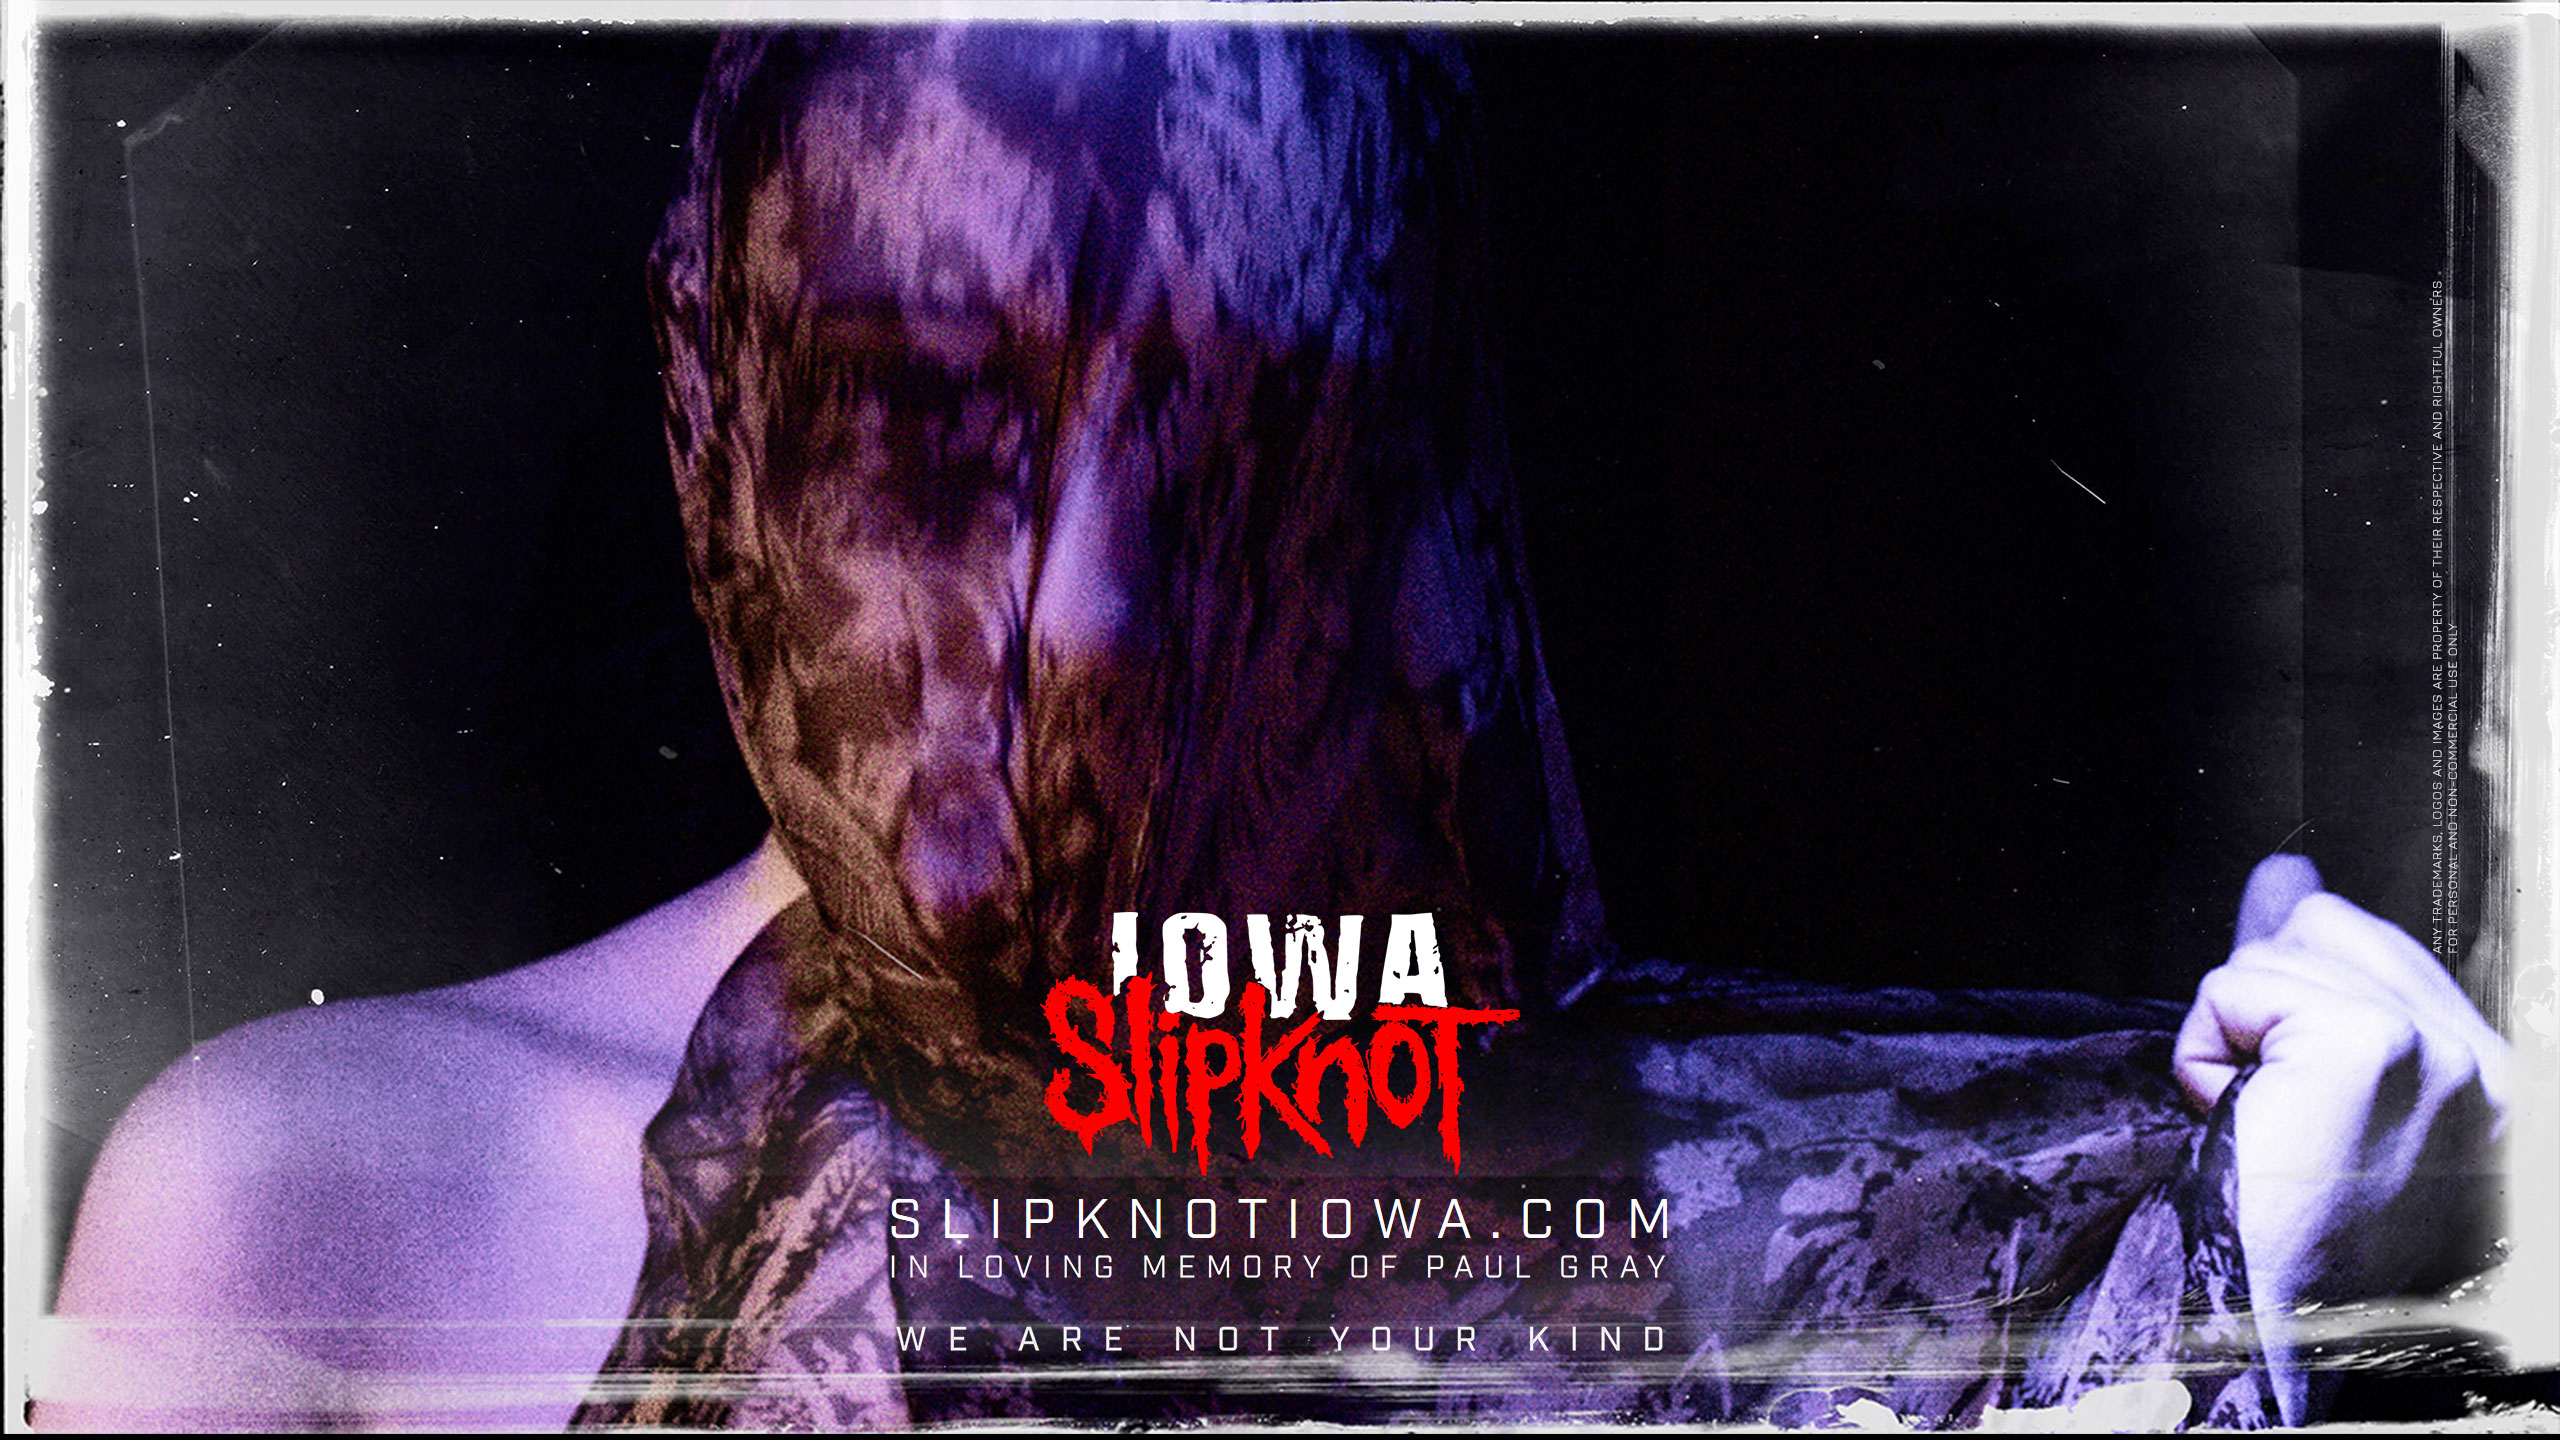 Slipknot Wallpapers Slipknot Fansite Slipknotiowa Com